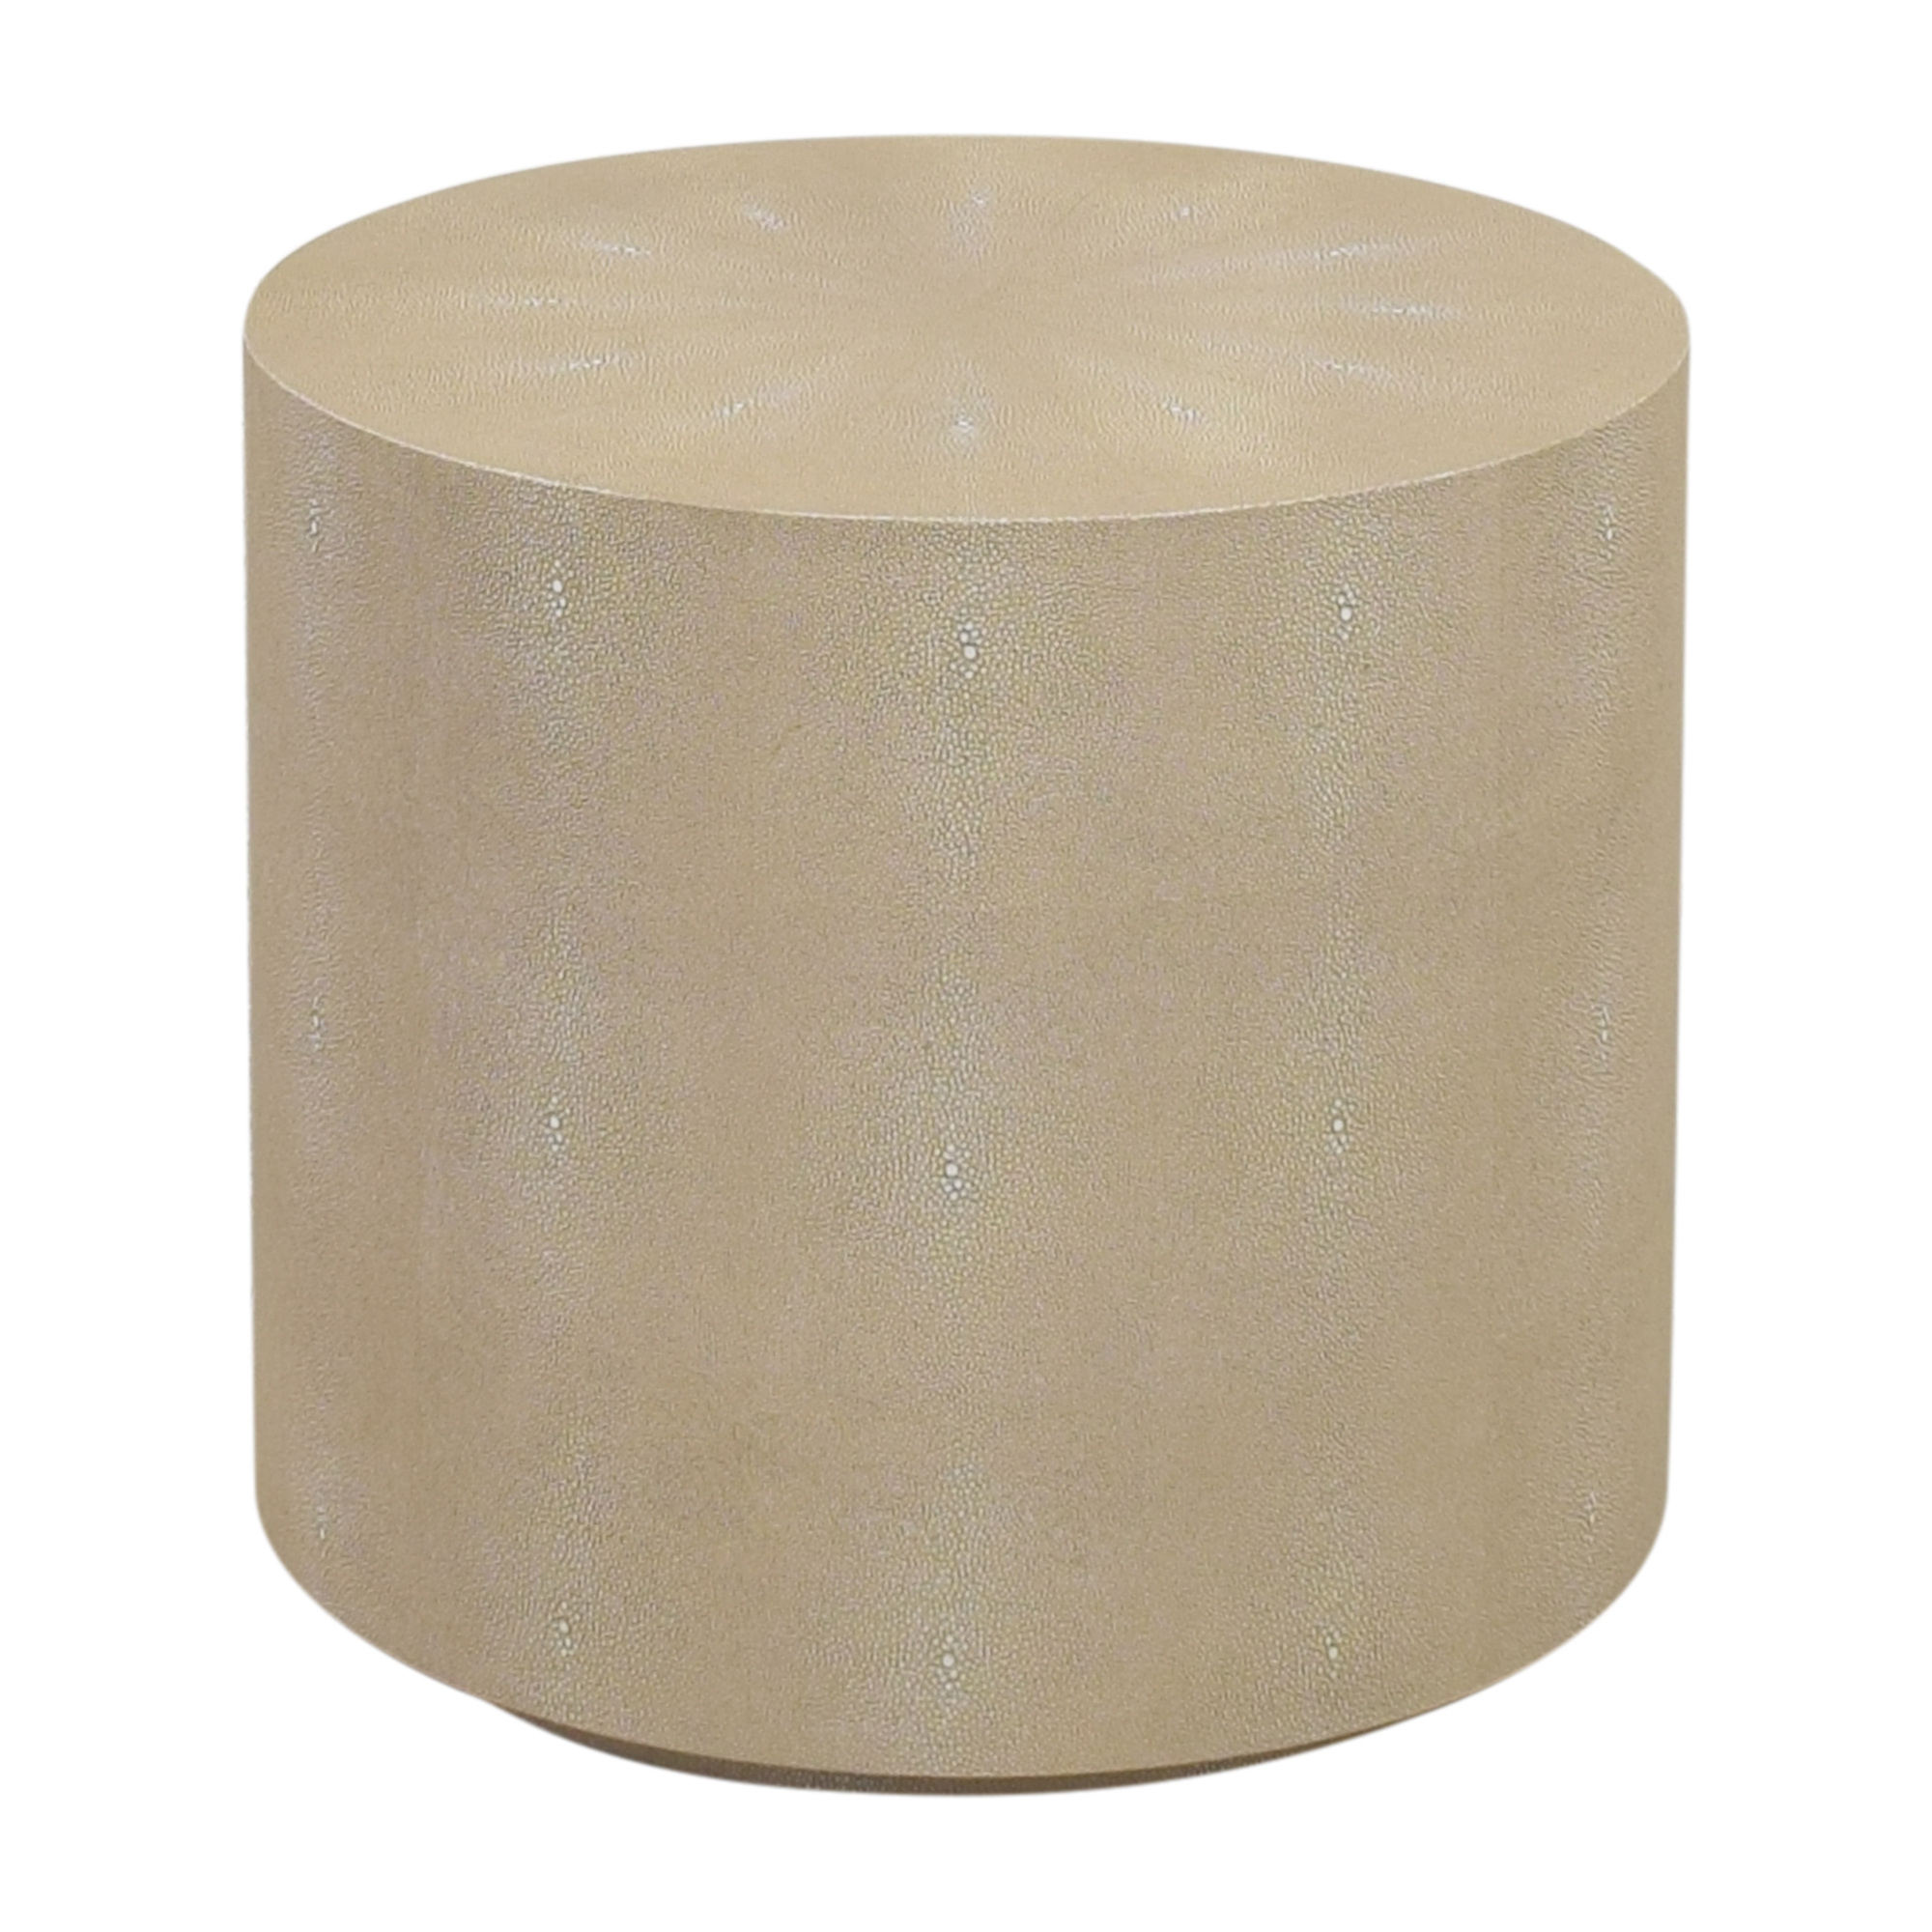 Safavieh Safavieh Couture Diesel End Table pa